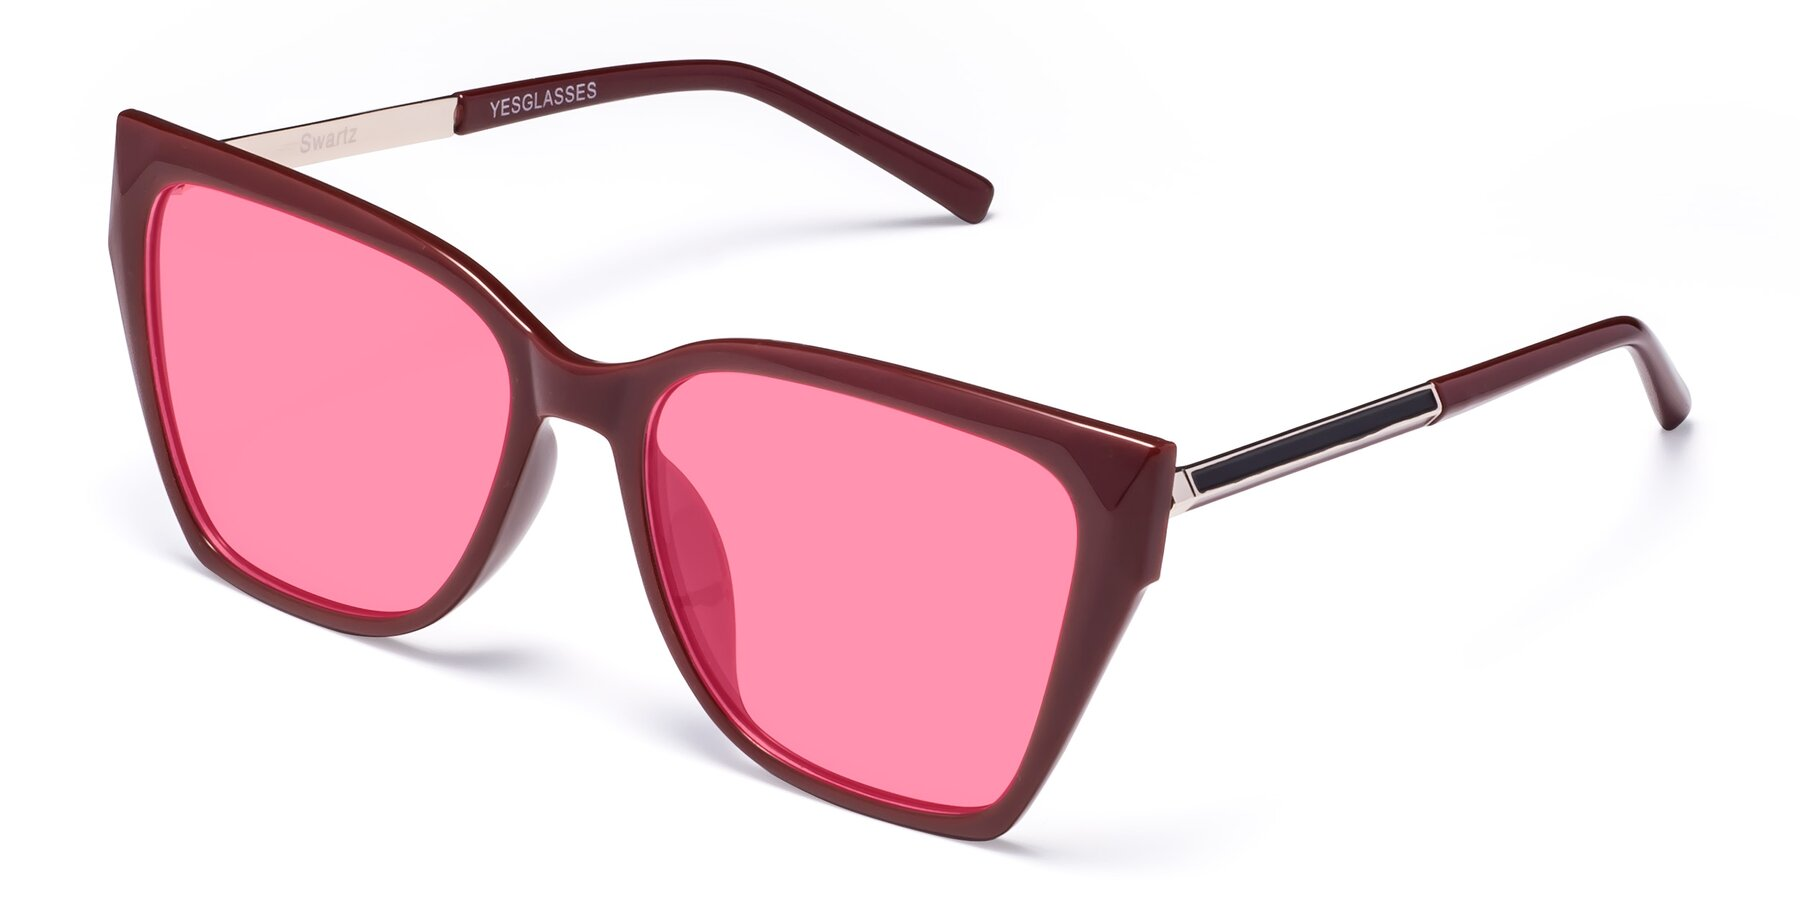 Angle of Swartz in Wine with Pink Tinted Lenses